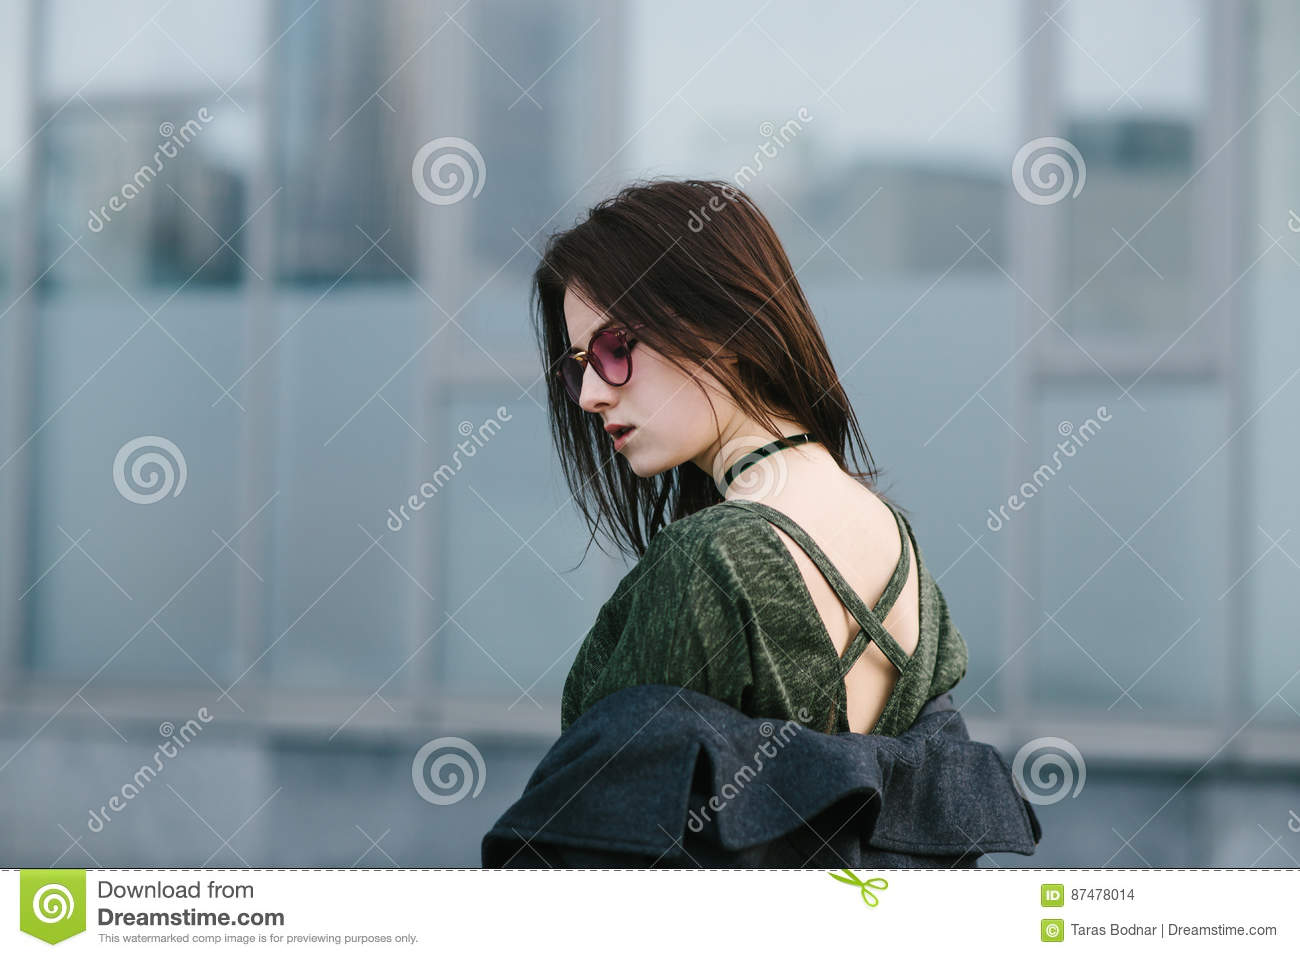 Young beautiful brunette woman posing at the camera exposing their backs against the backdrop of modern architecture